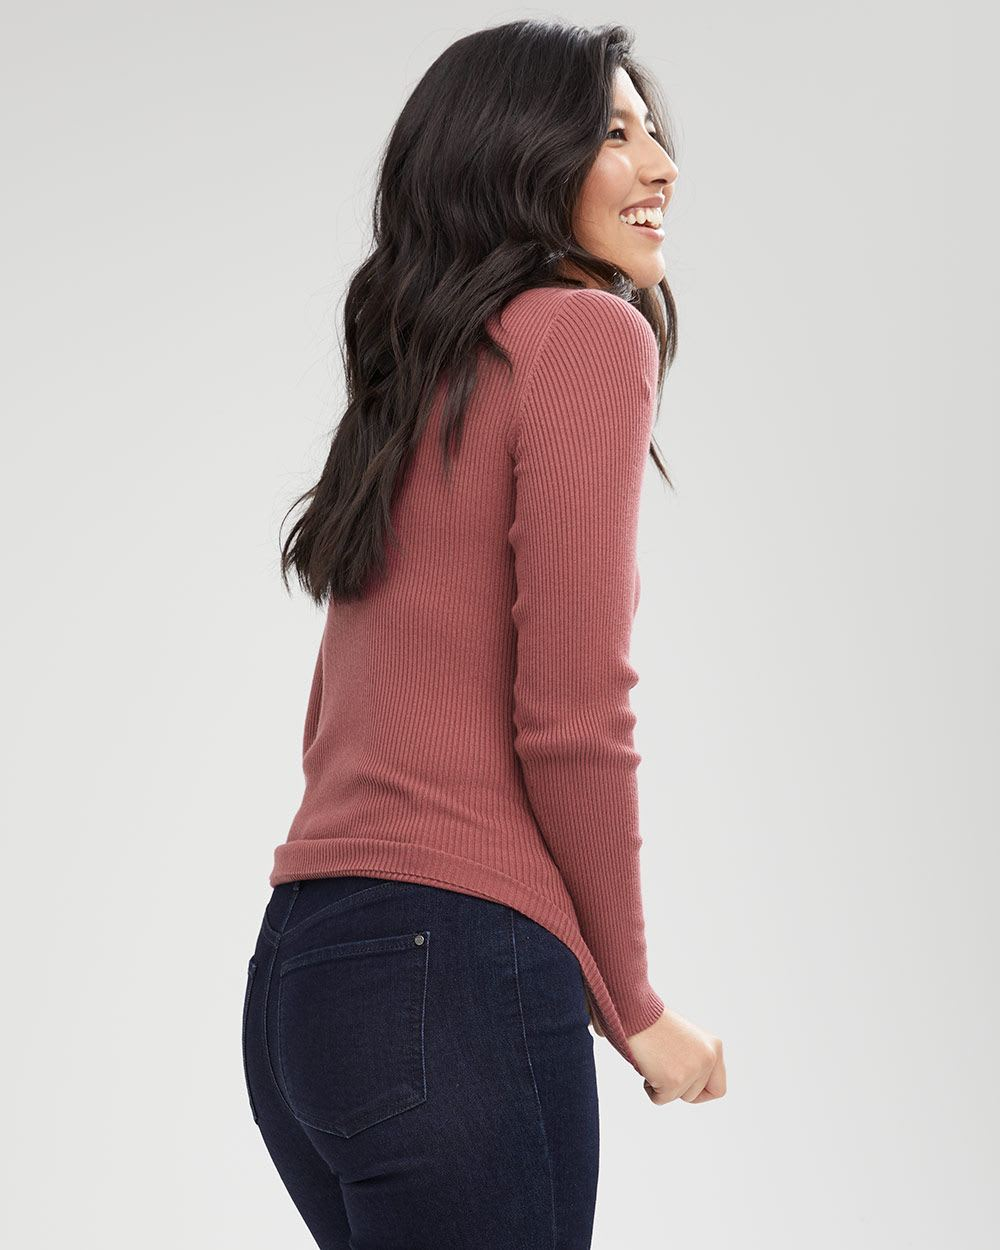 Fitted Cashmere-Like Sweater